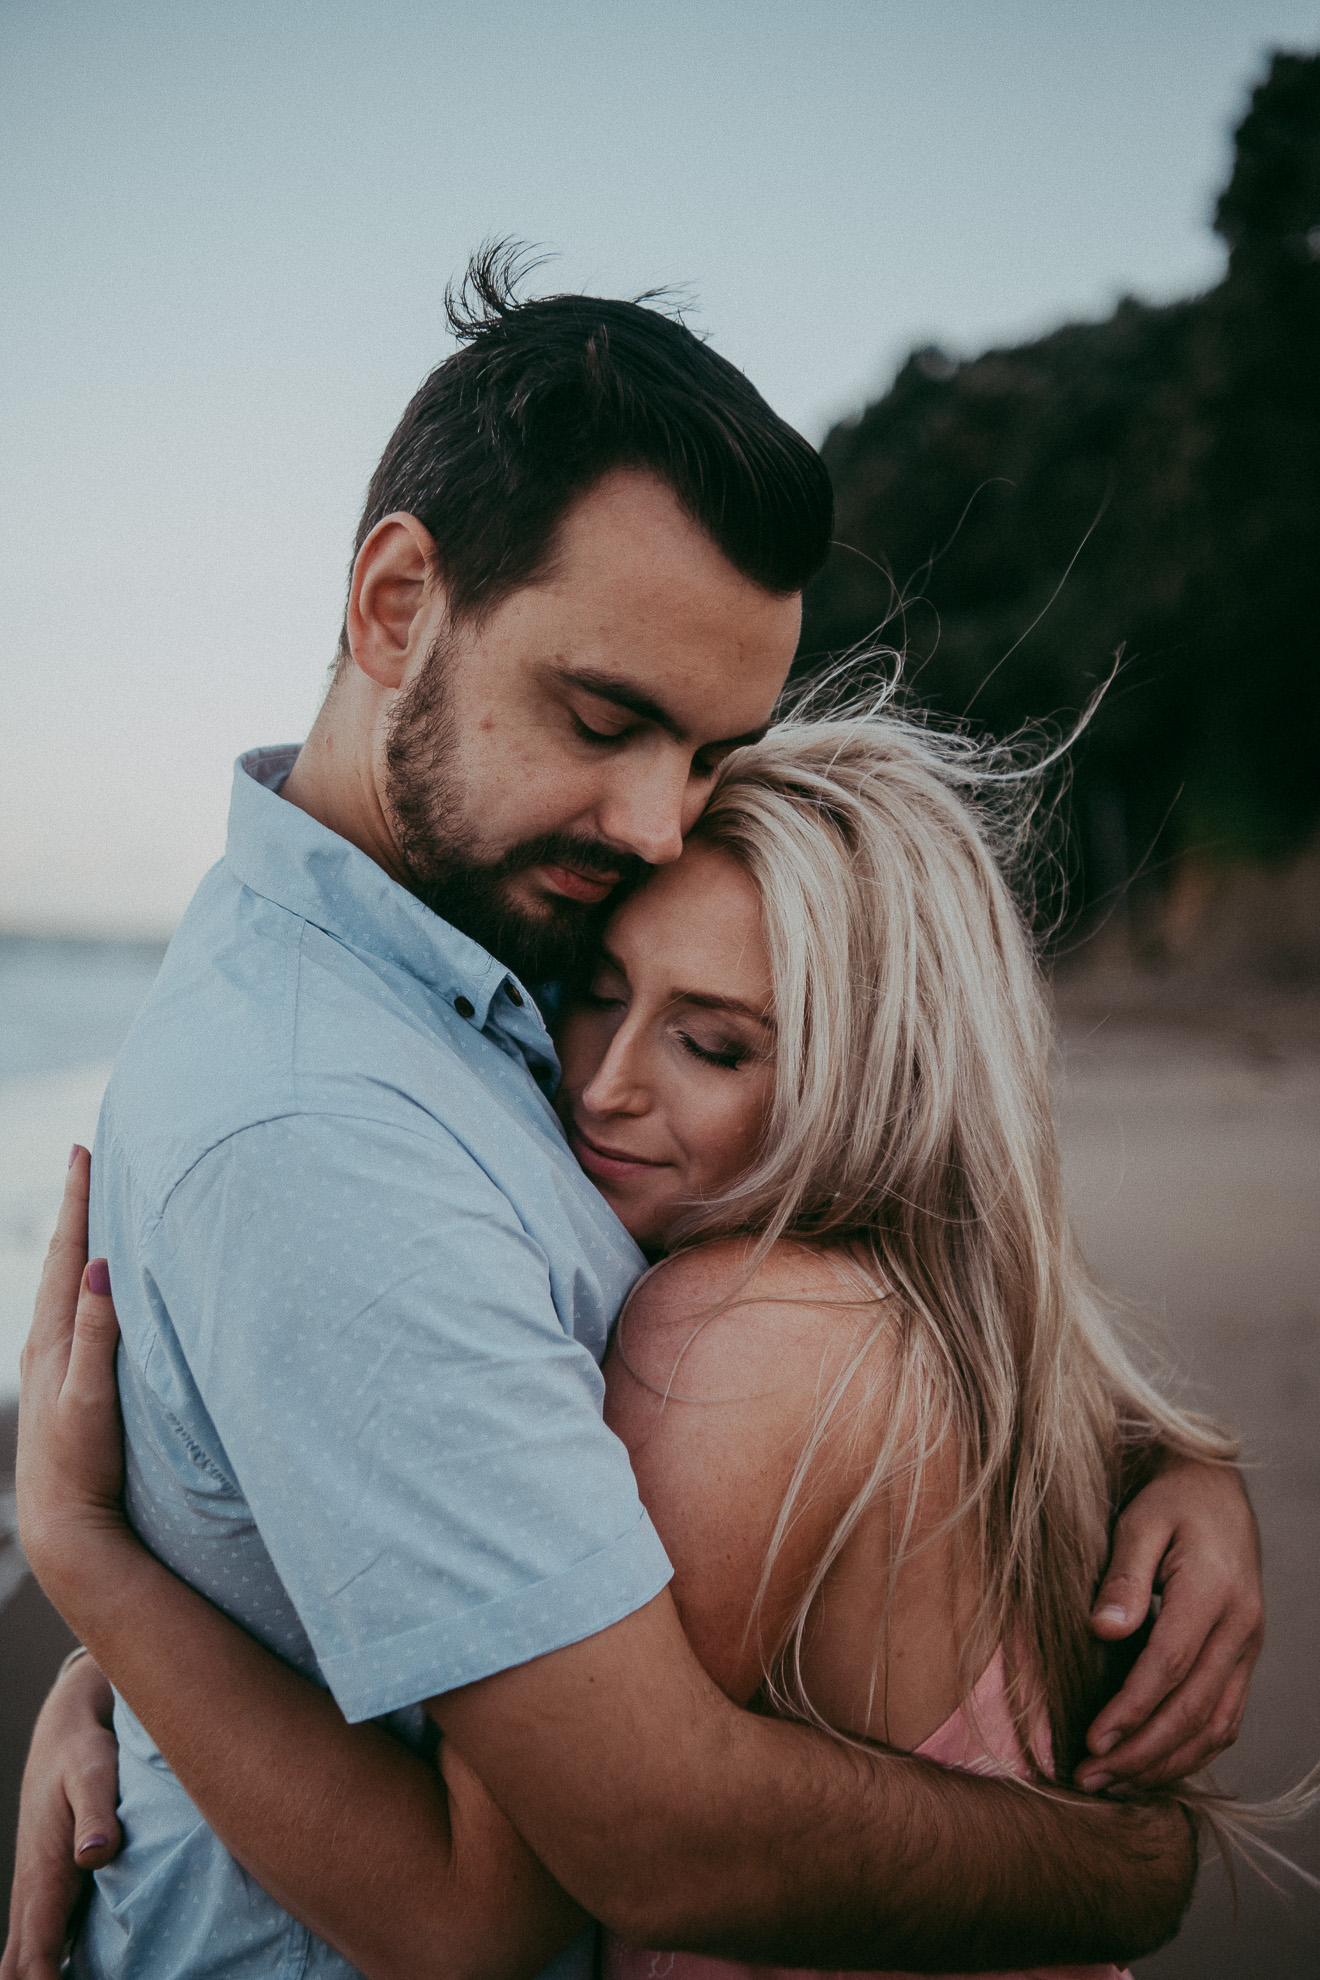 Campbells Bay engagement | pre-wedding photo shoot {North Auckland wedding photographer}